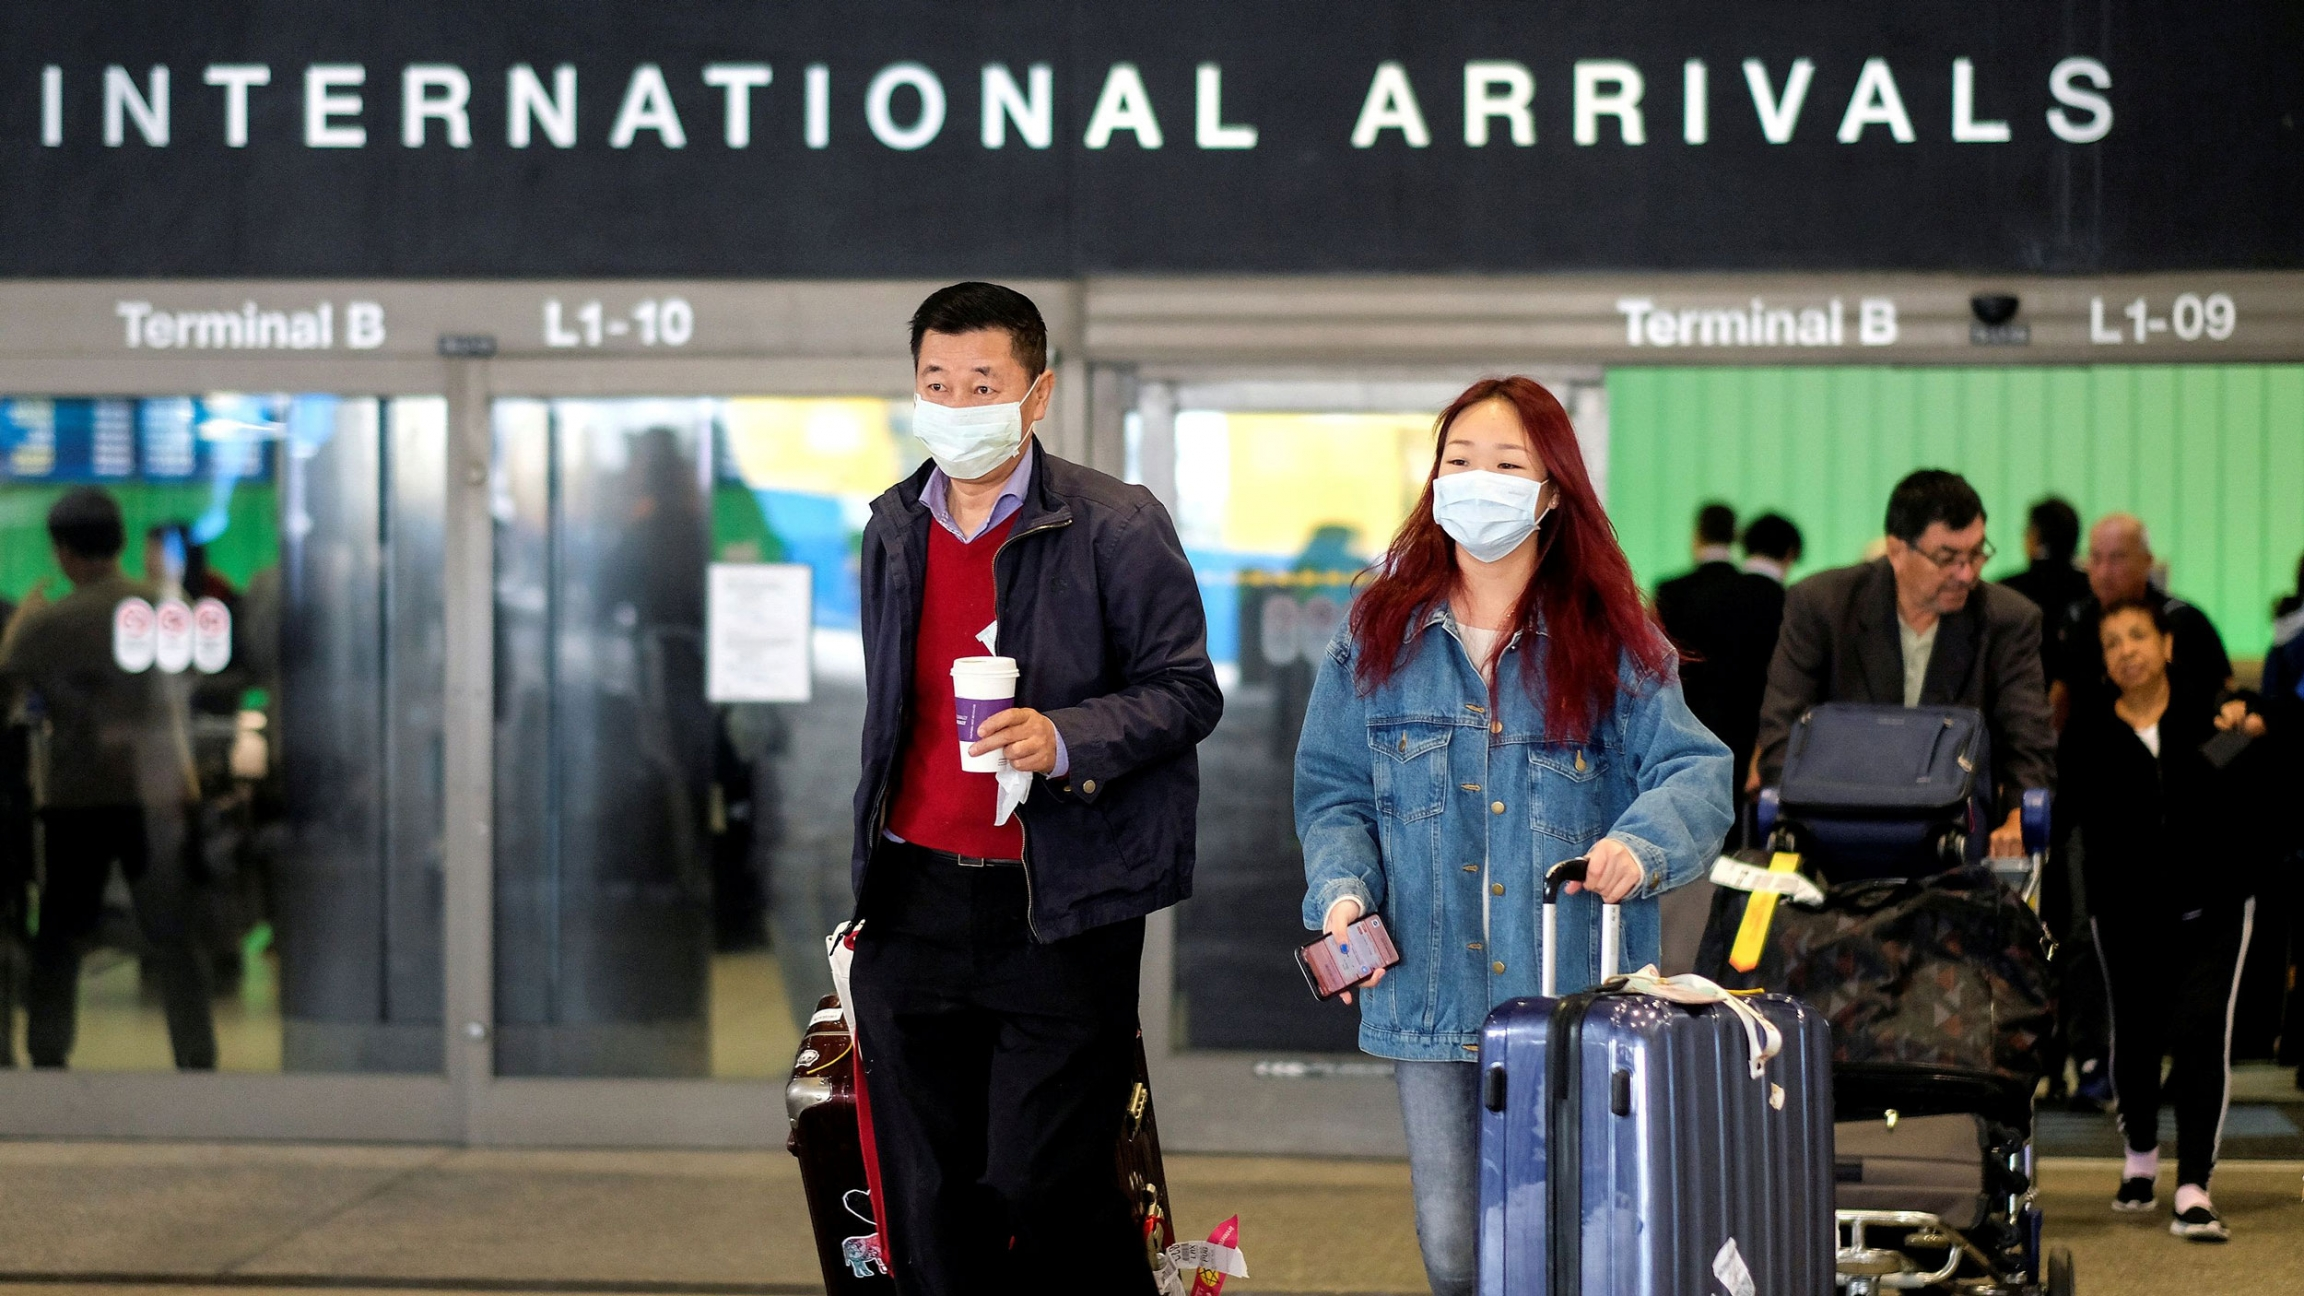 A man and a woman are shown with suitcases and wearing face masks while leaving the international arrivals terminal at Los Angeles International Airport.